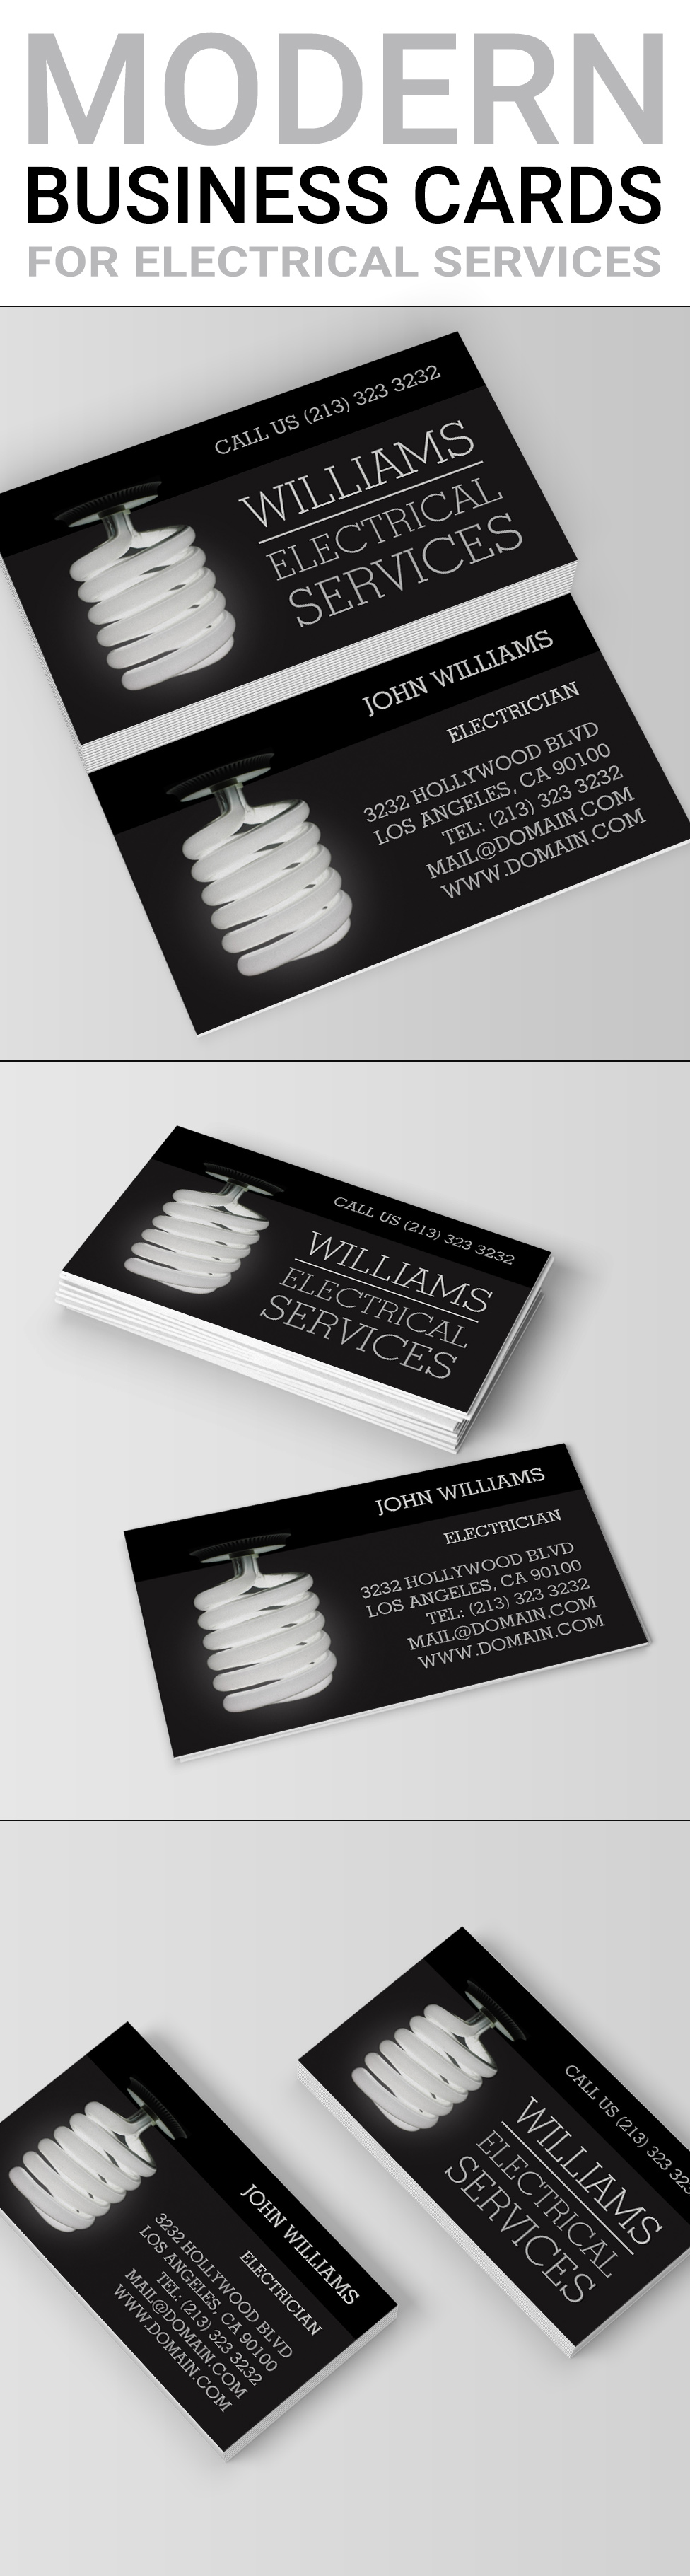 Electrician Electrical Services Light Bulb Business Card | Business ...